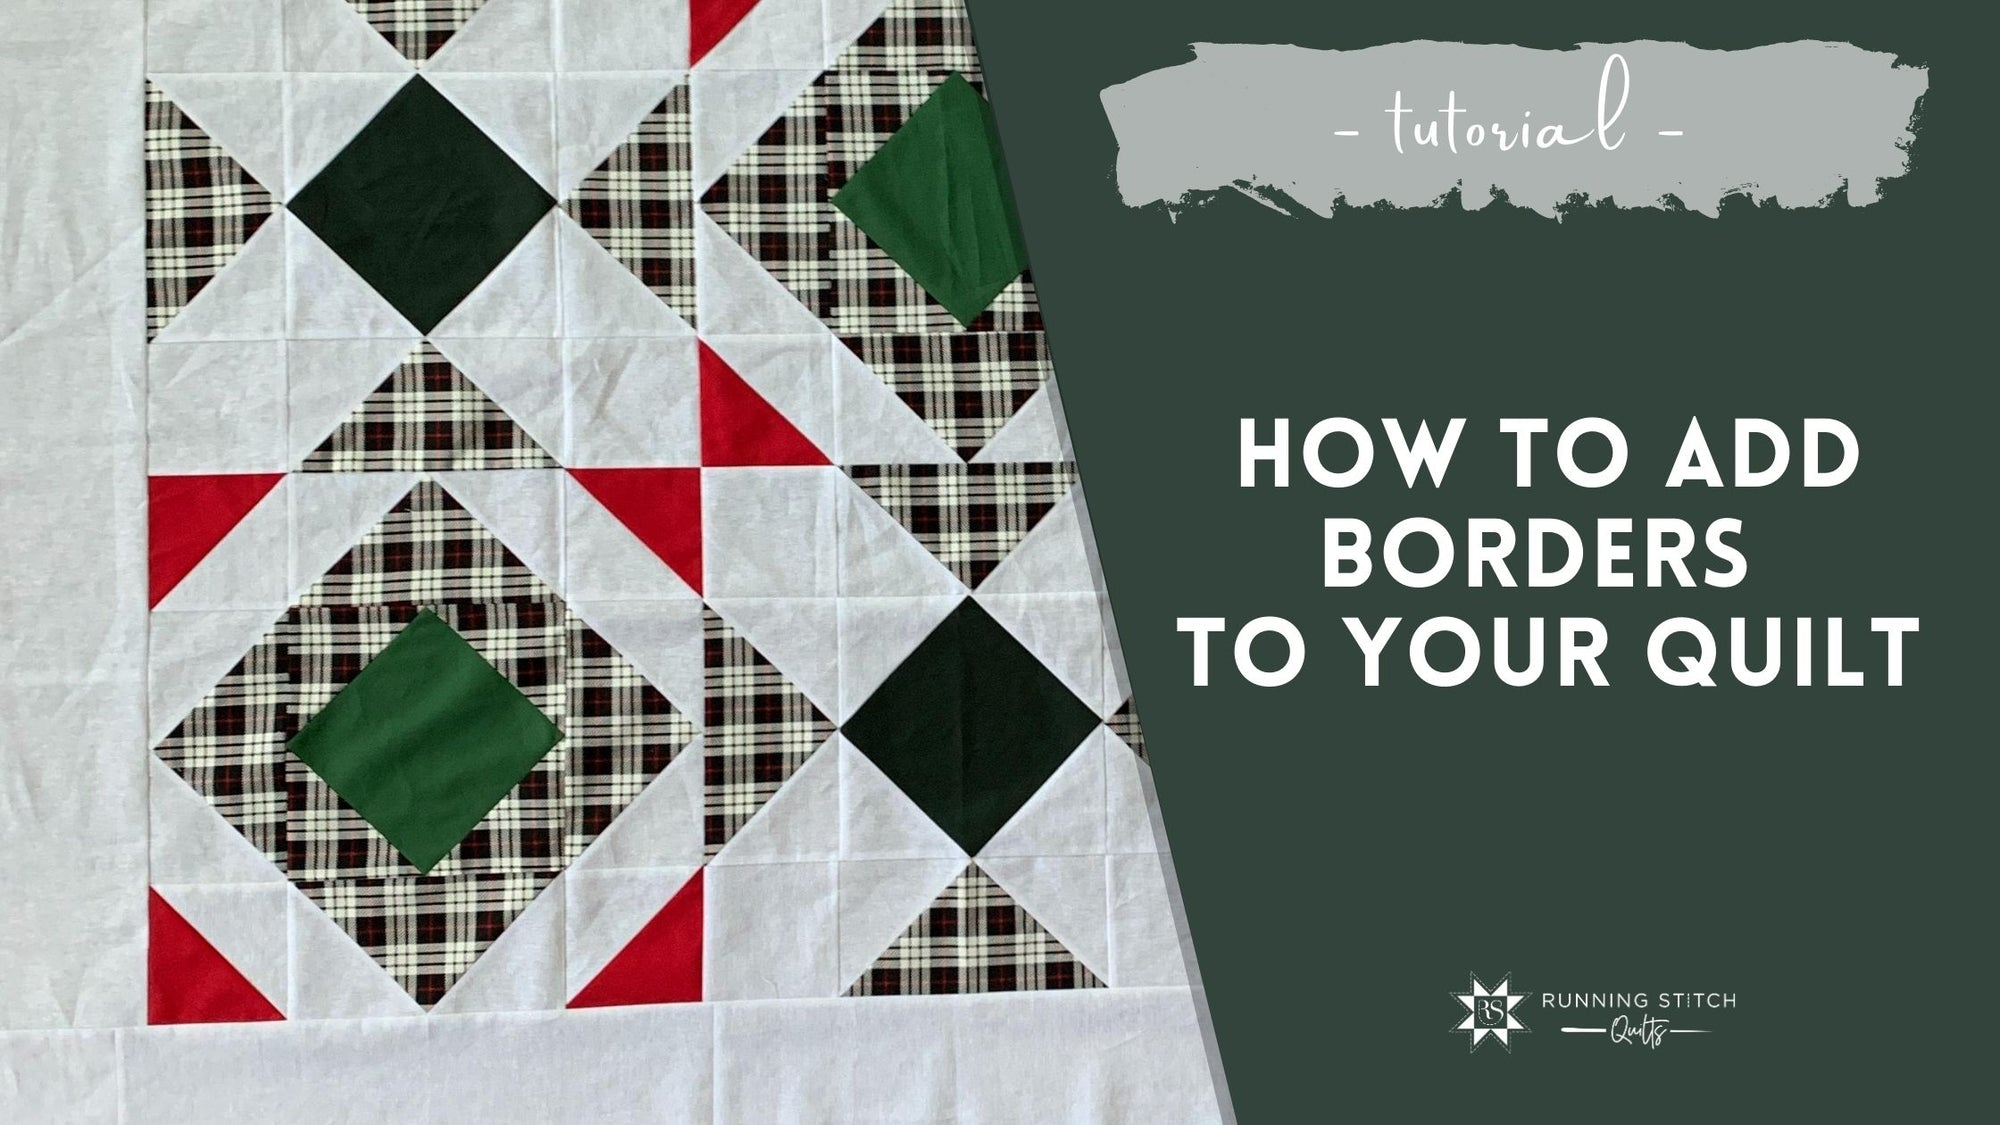 How to Add Borders to your Quilt